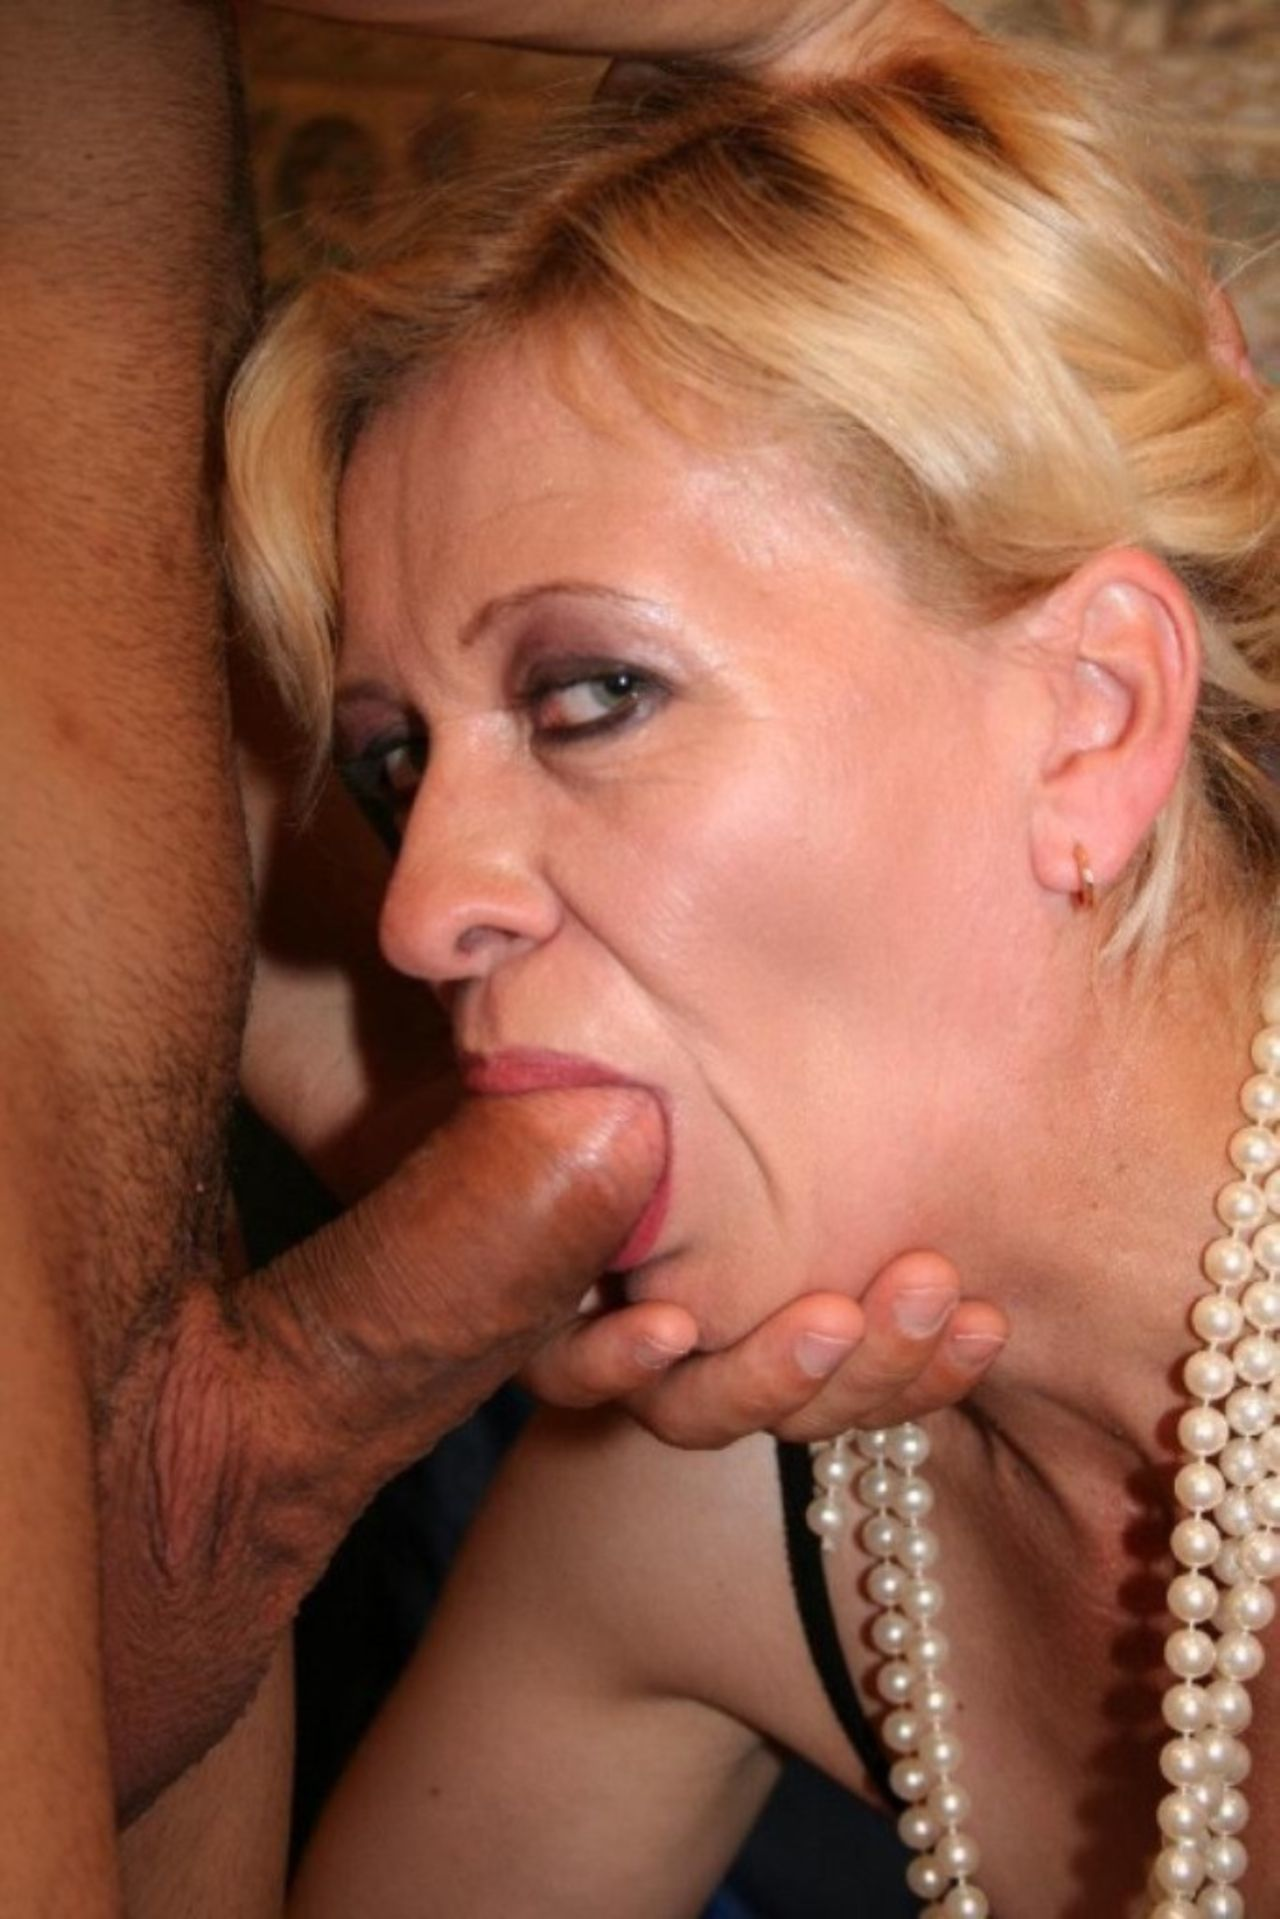 channel-pornos-mature-sucking-unblocked-porn-movies